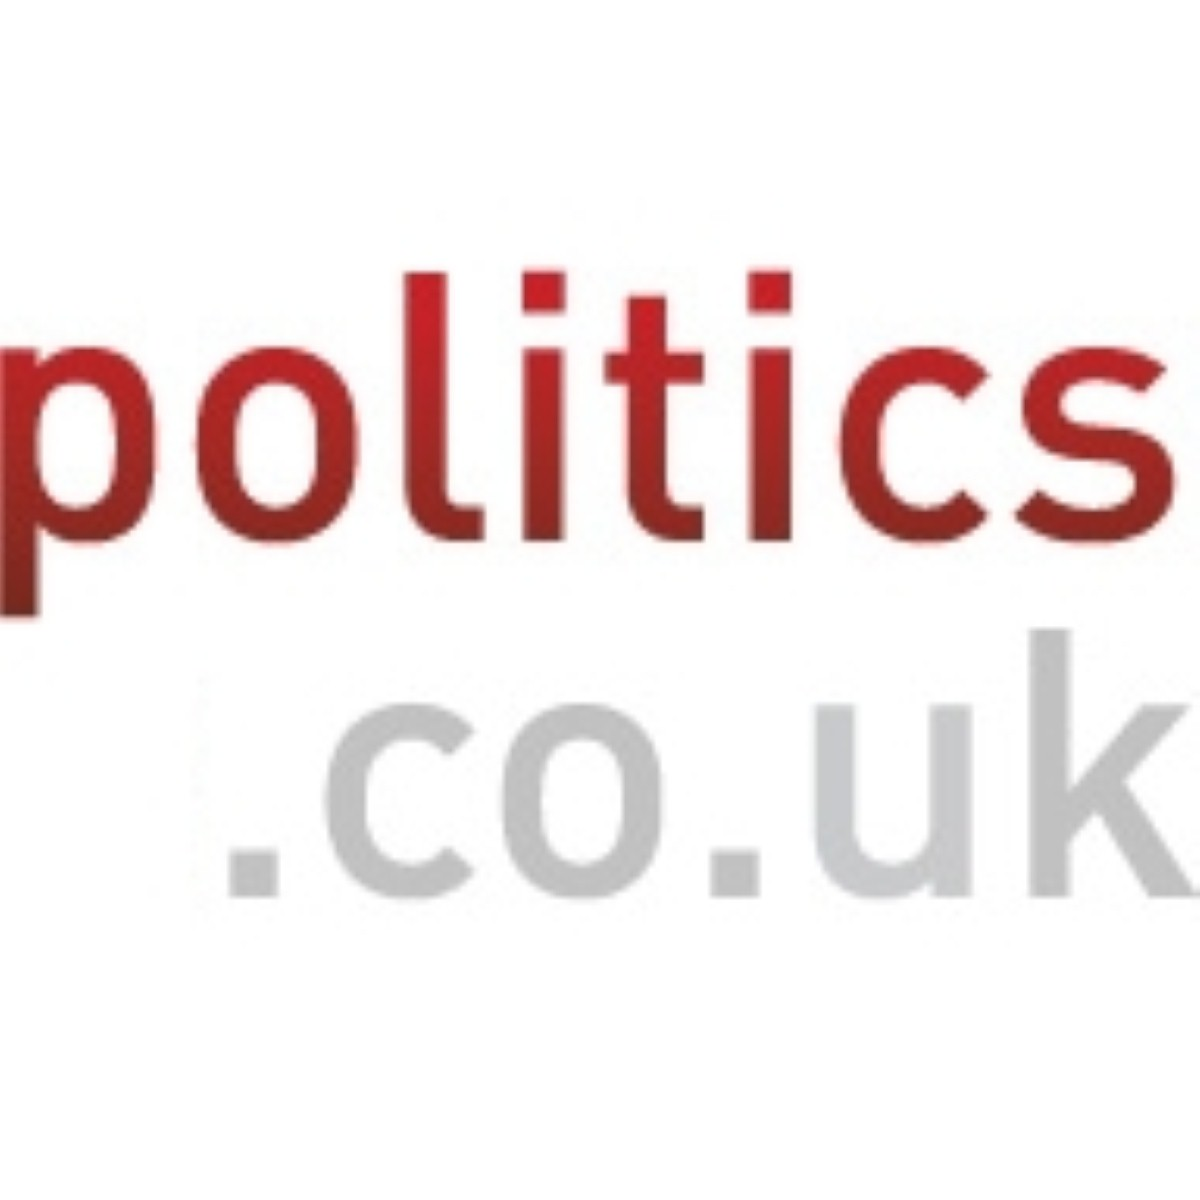 Unite: Sacking proposals are a pathway to misery